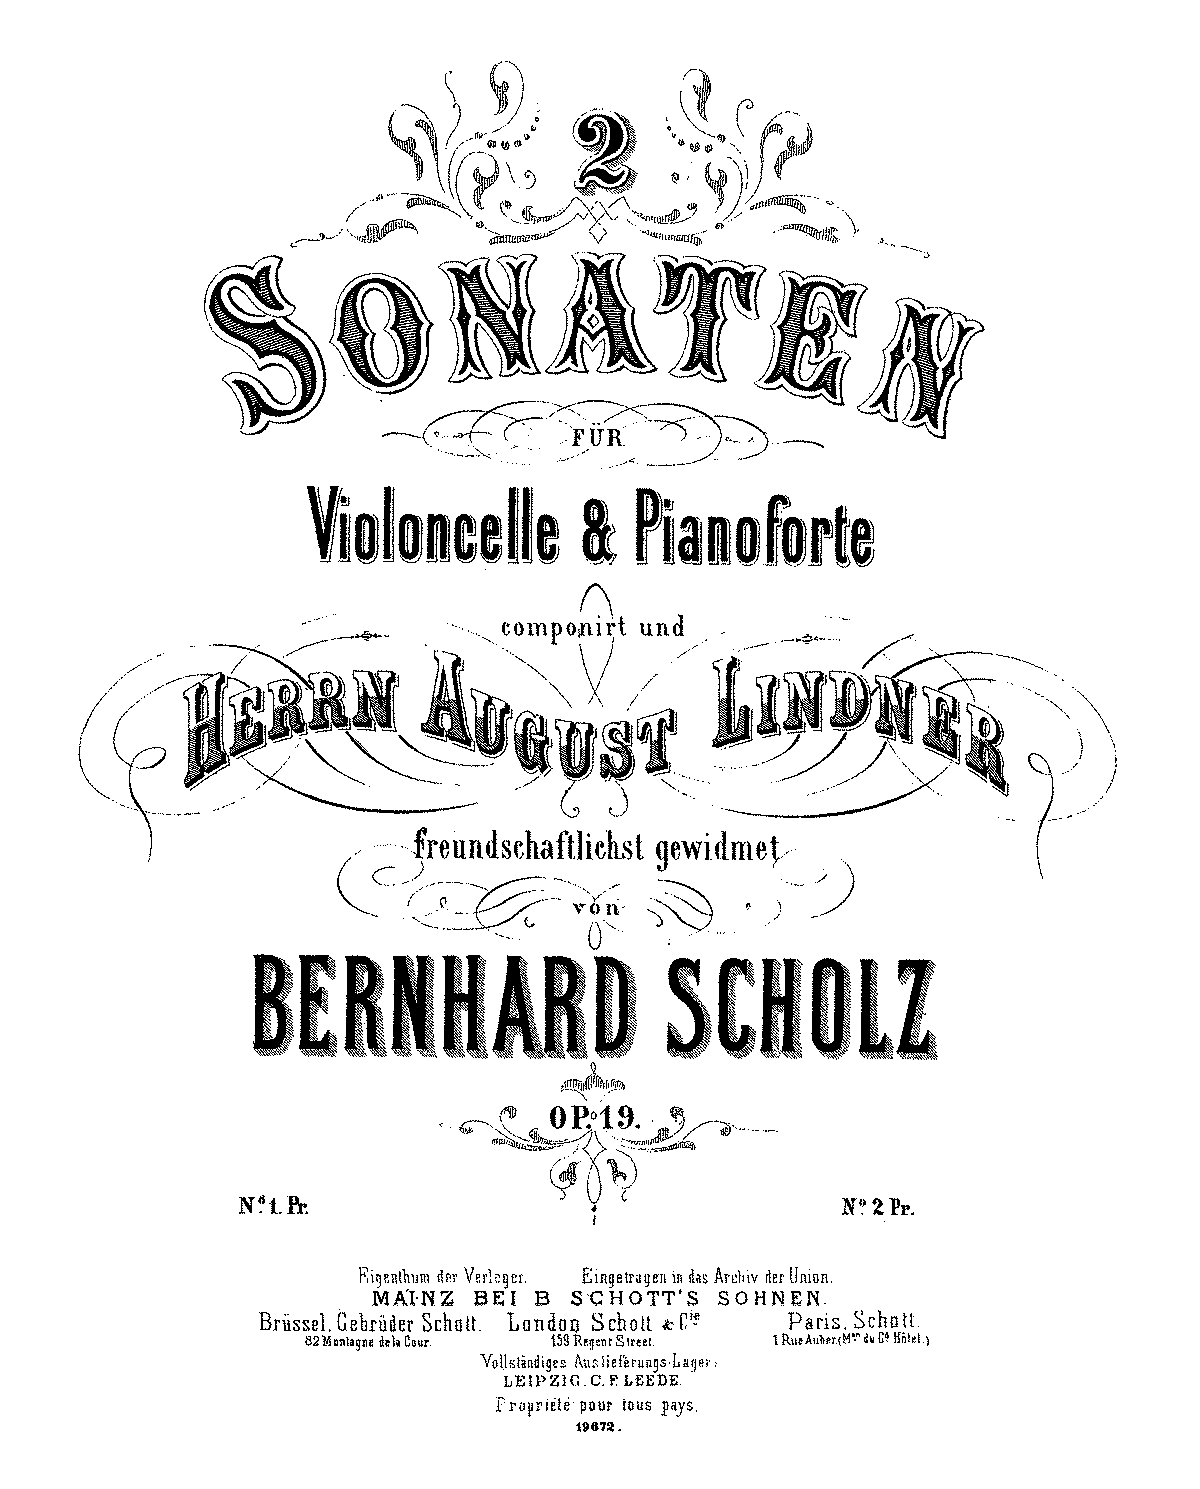 PMLP528145-BScholz 2 Cello Sonatas, Op.19 No.1 pianoscore.pdf